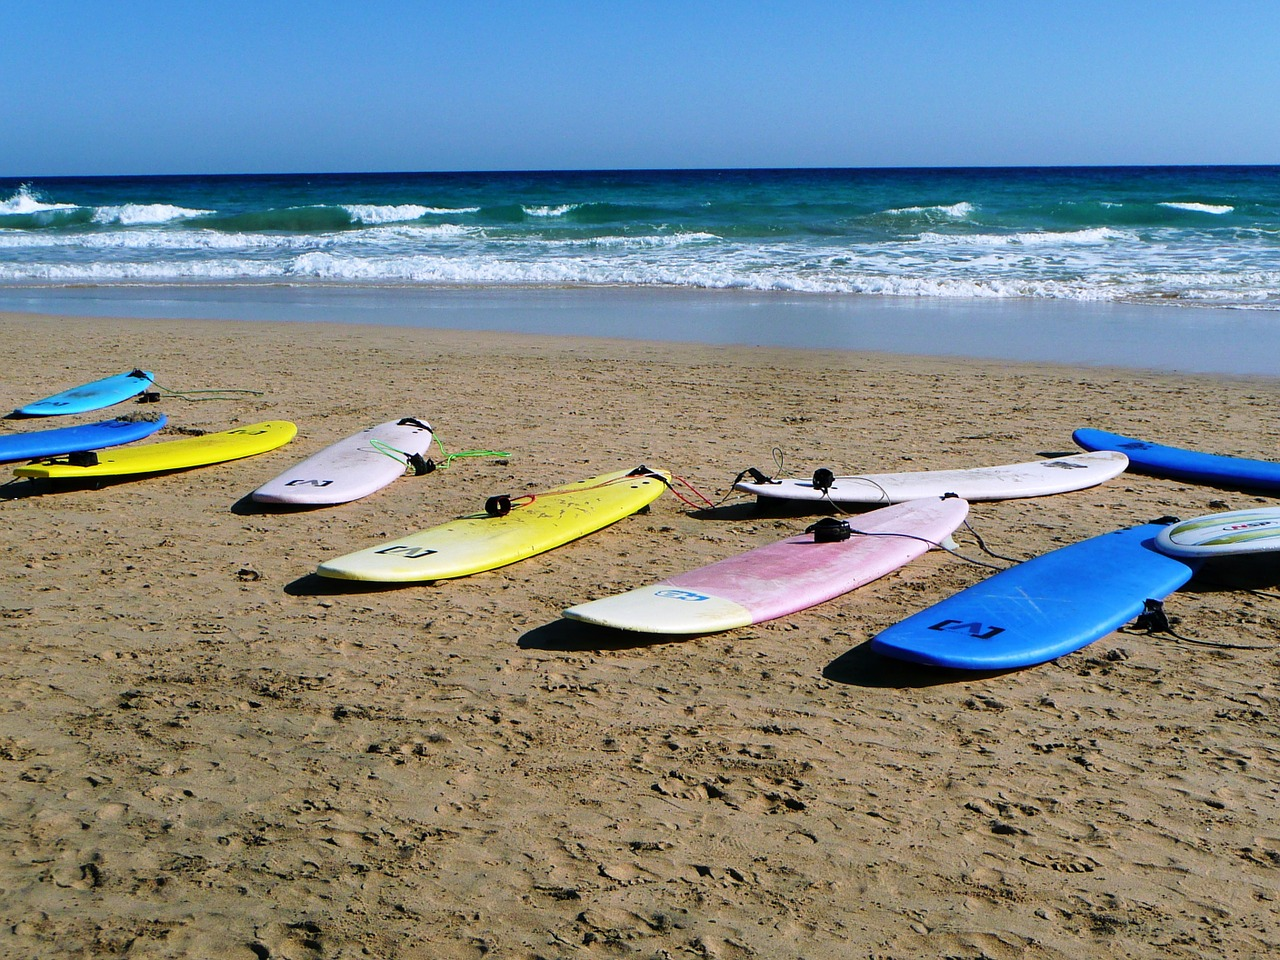 surfboards-753417_1280